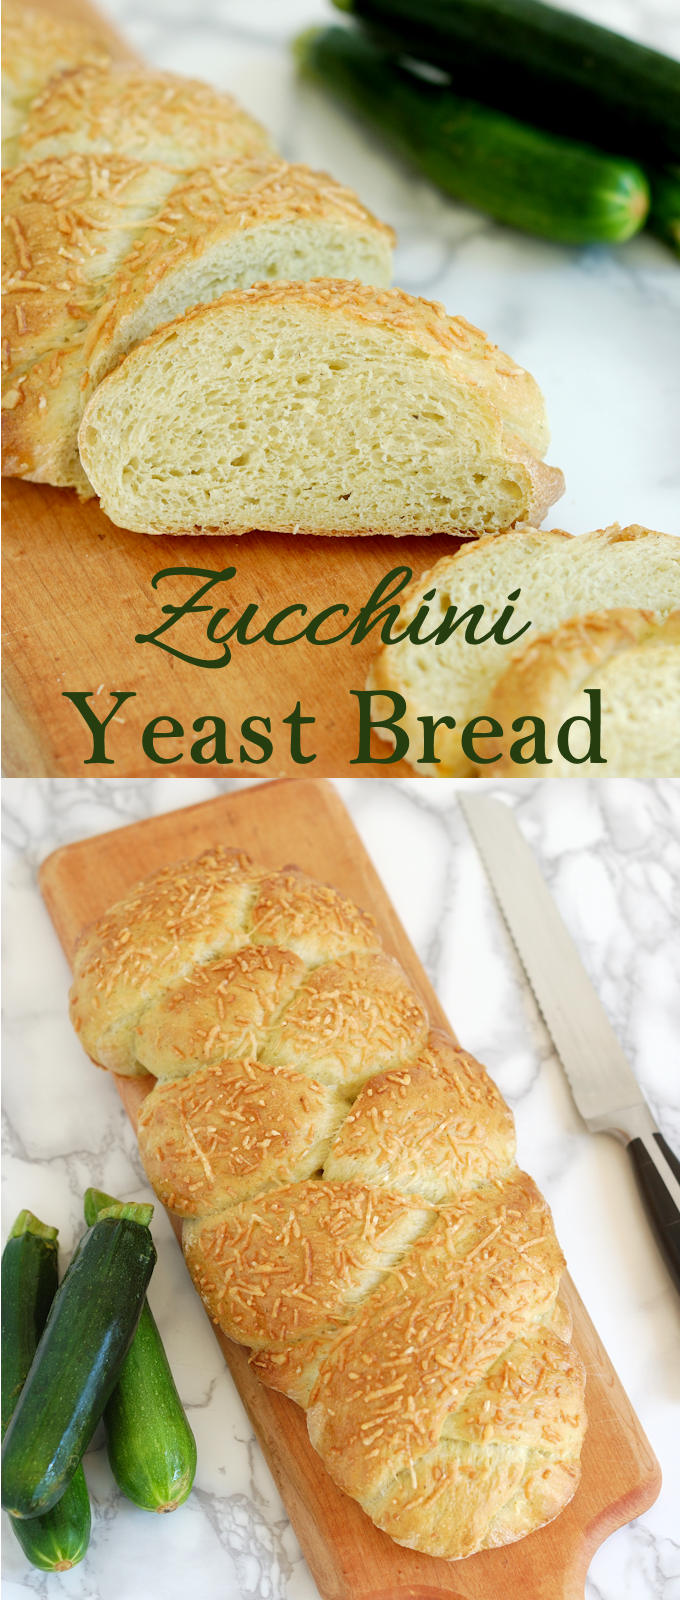 Yeast bread made with zucchini for a super soft crumb and moist texture. Great way to use up that zucchini.